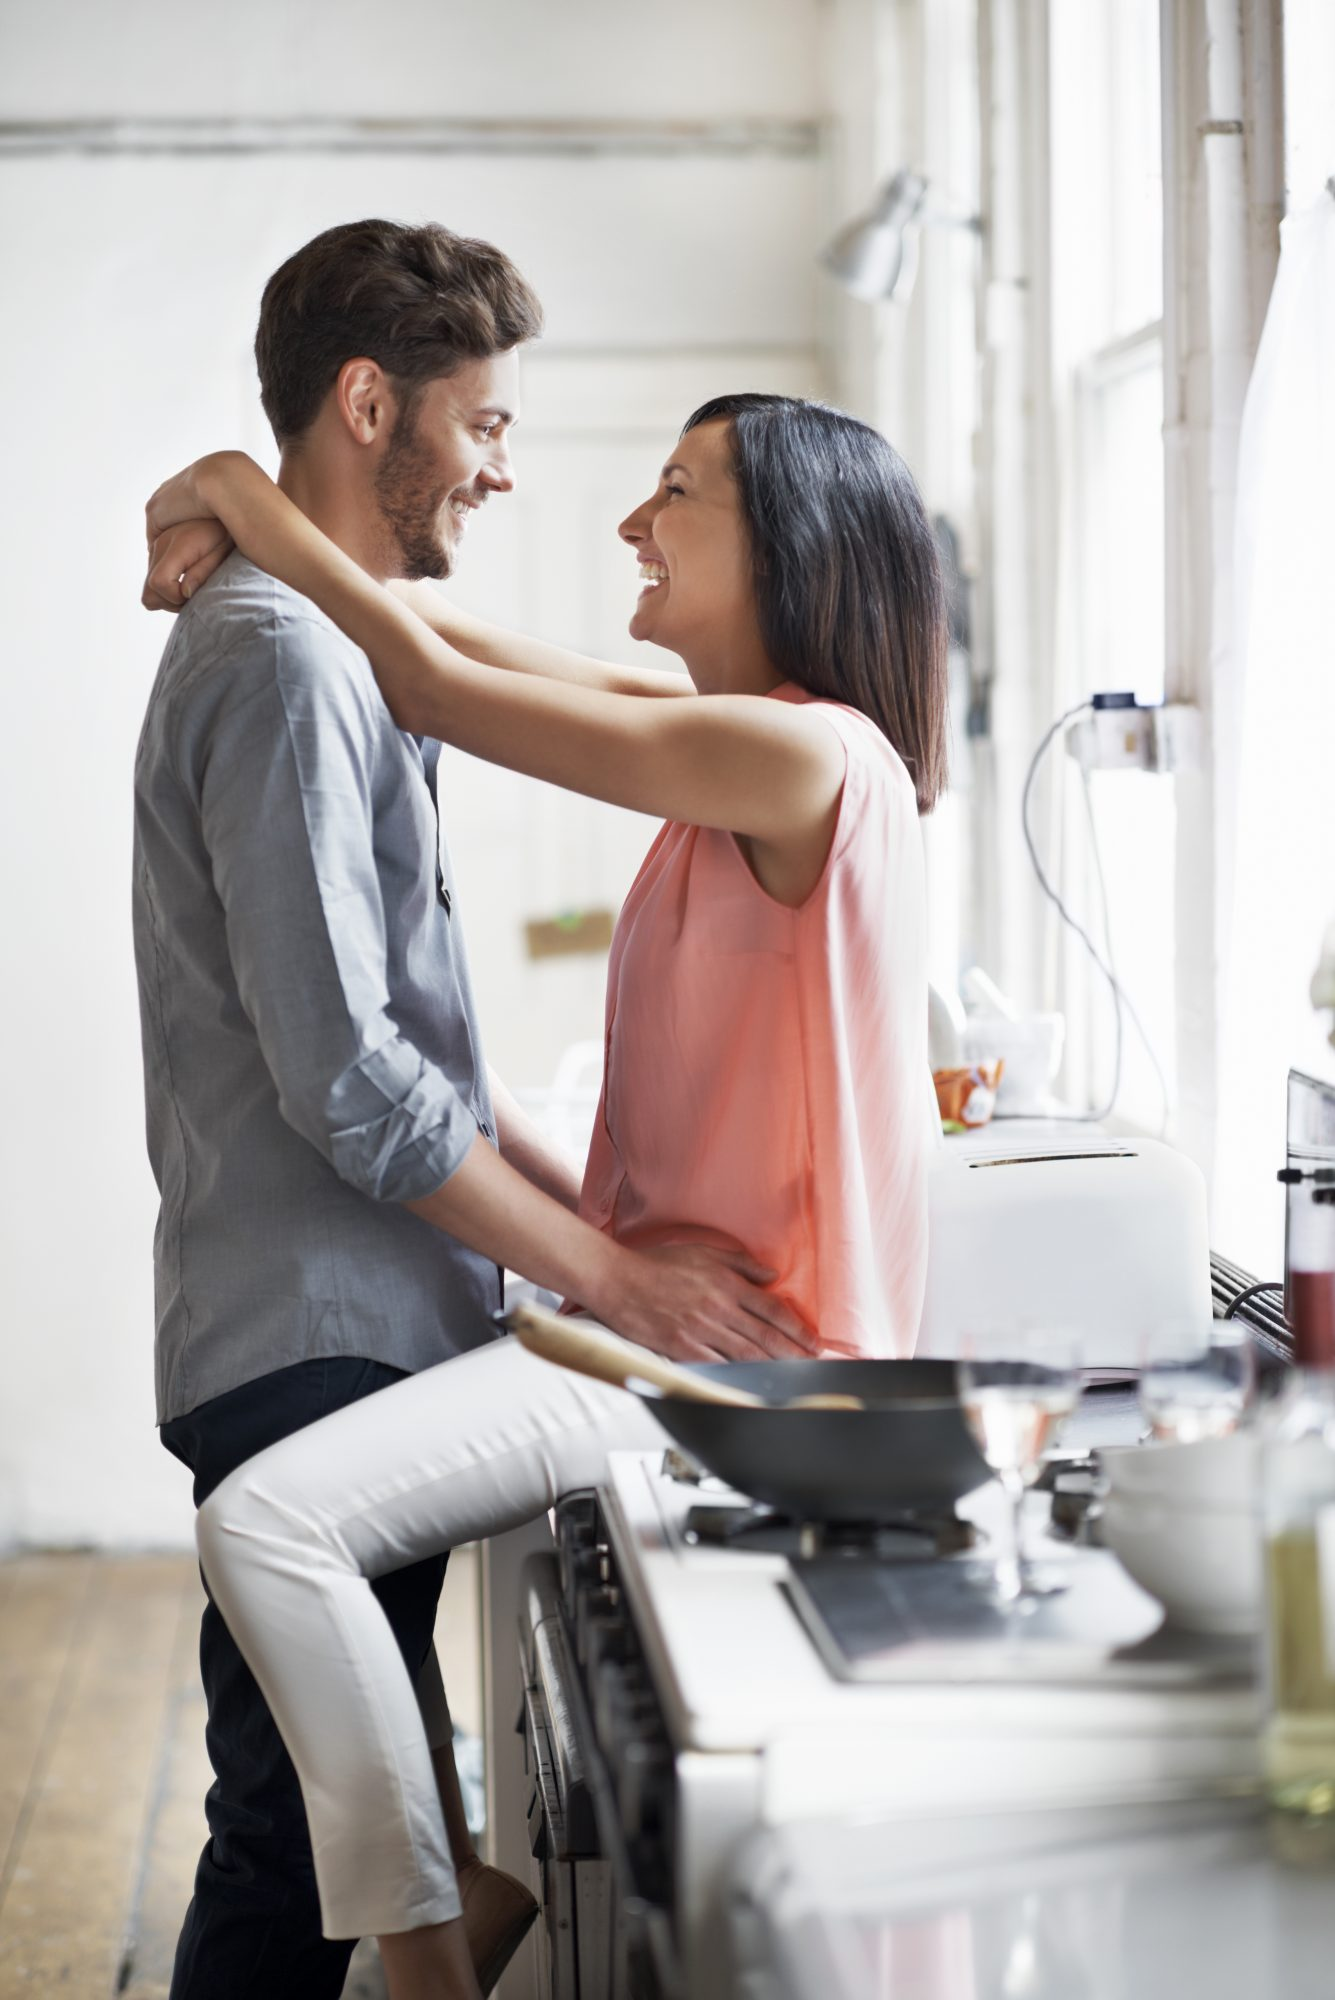 Couple having fun while cooking